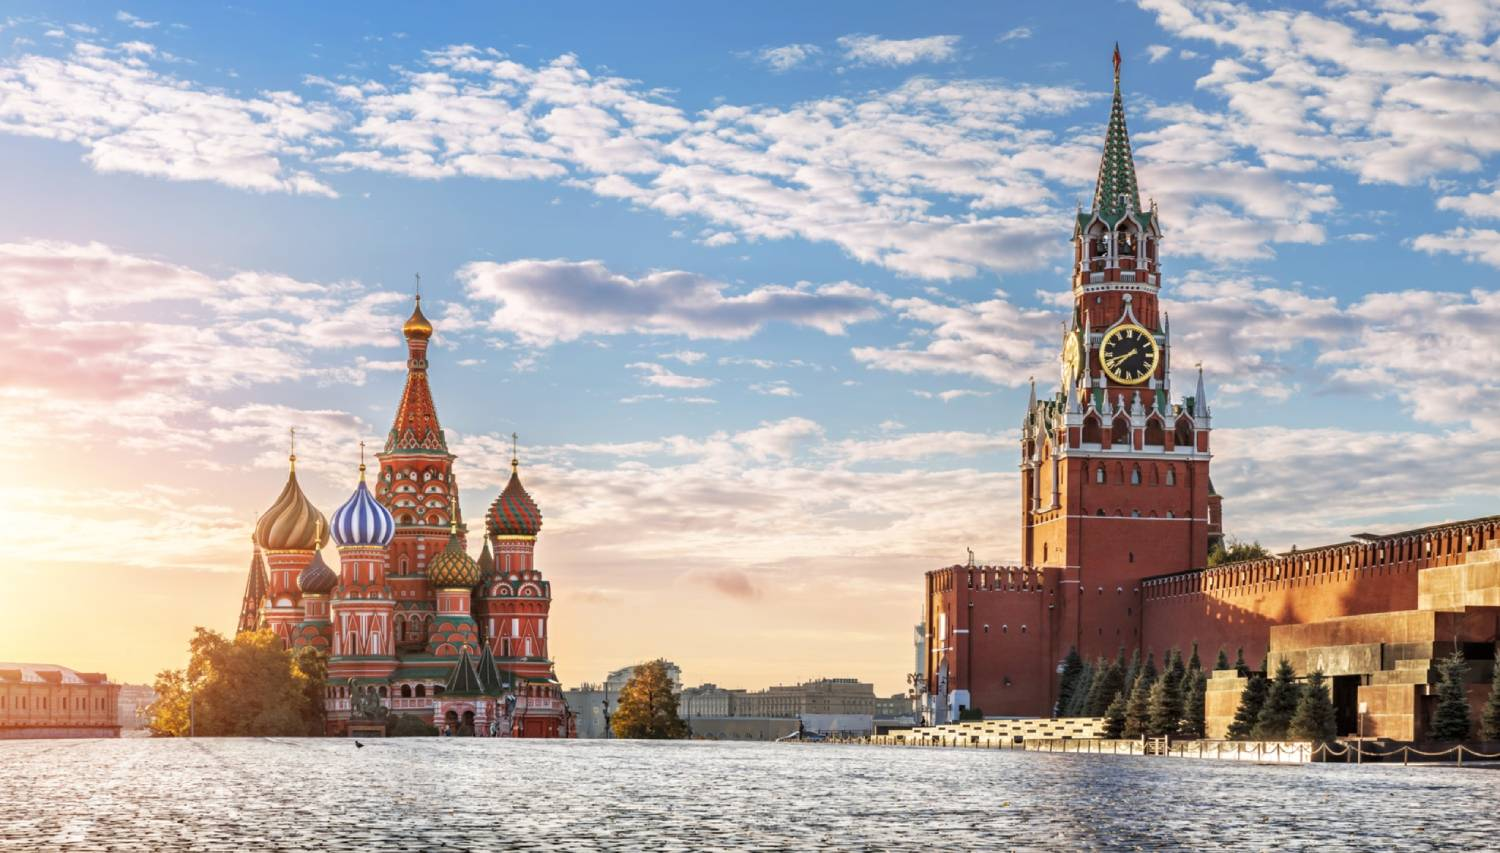 Red Square (Krasnaya Ploschad) - Things To Do In Moscow